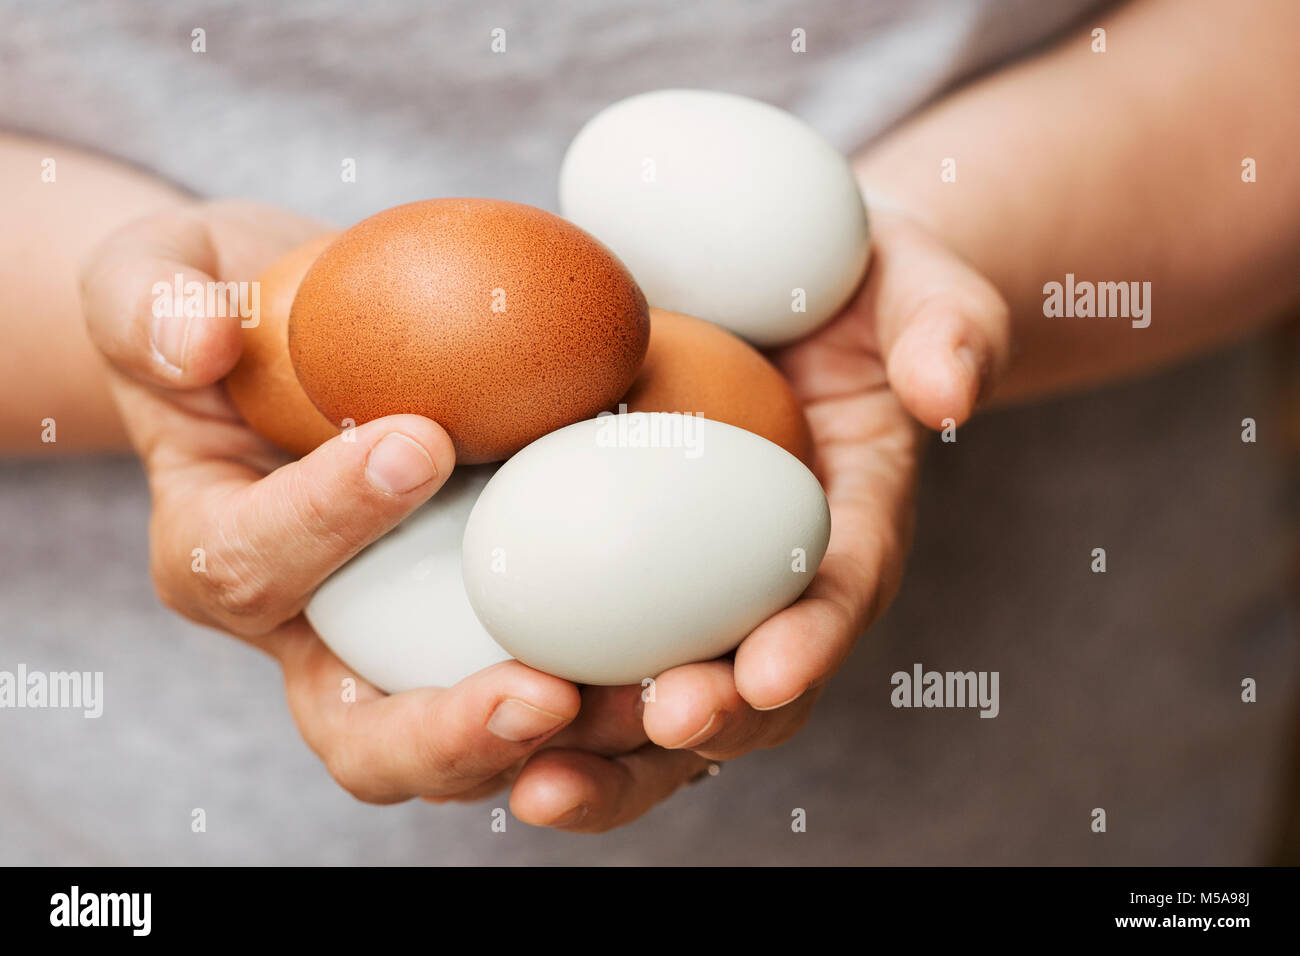 A woman holding hands full of fresh brown and white eggs. - Stock Image